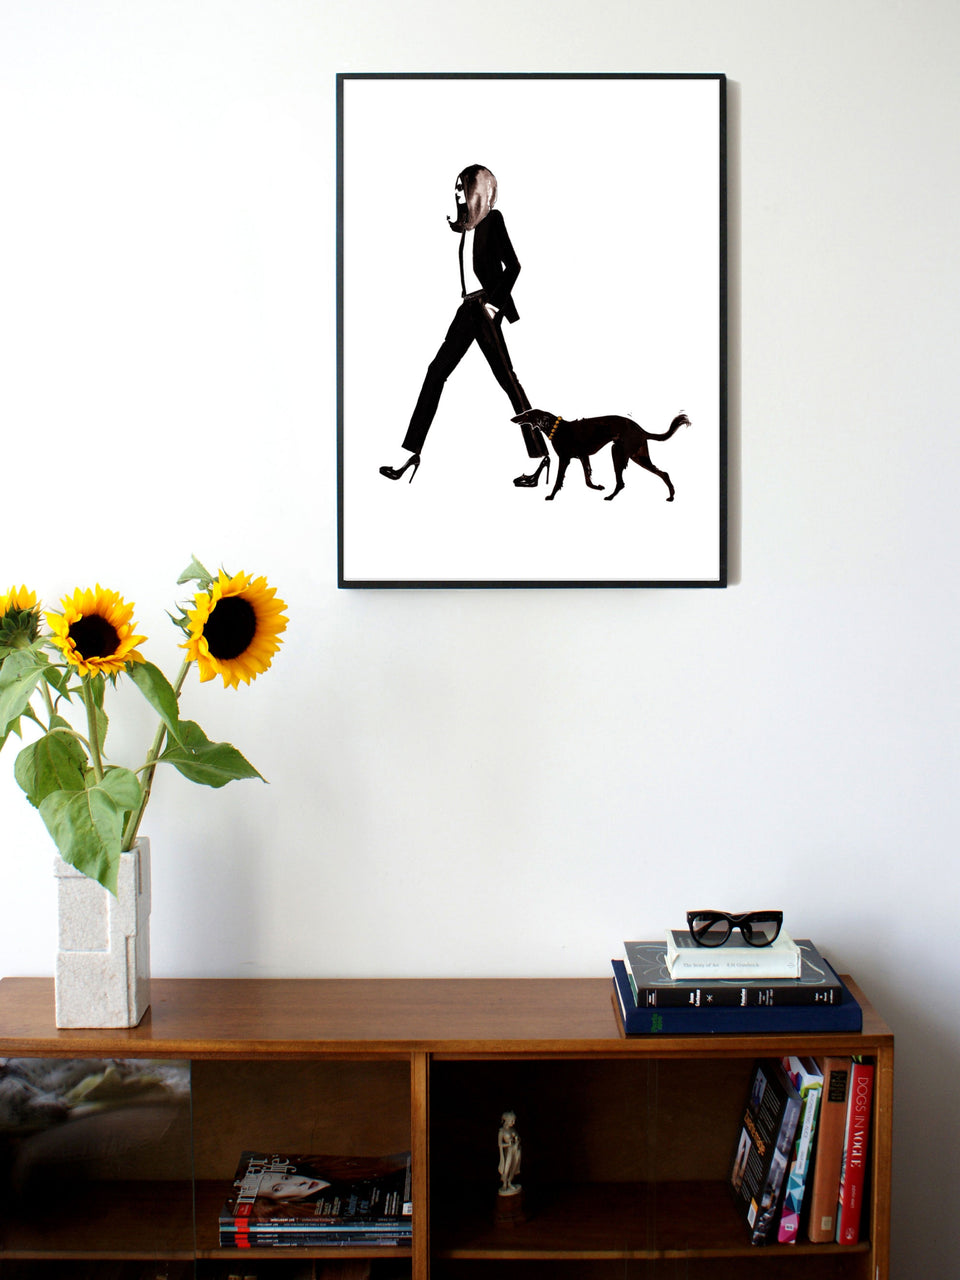 Fashion illustration print of YSL & Dog by Sjoukje Bierma - woman in Le Smoking with dog - 60 x 80 cm framed